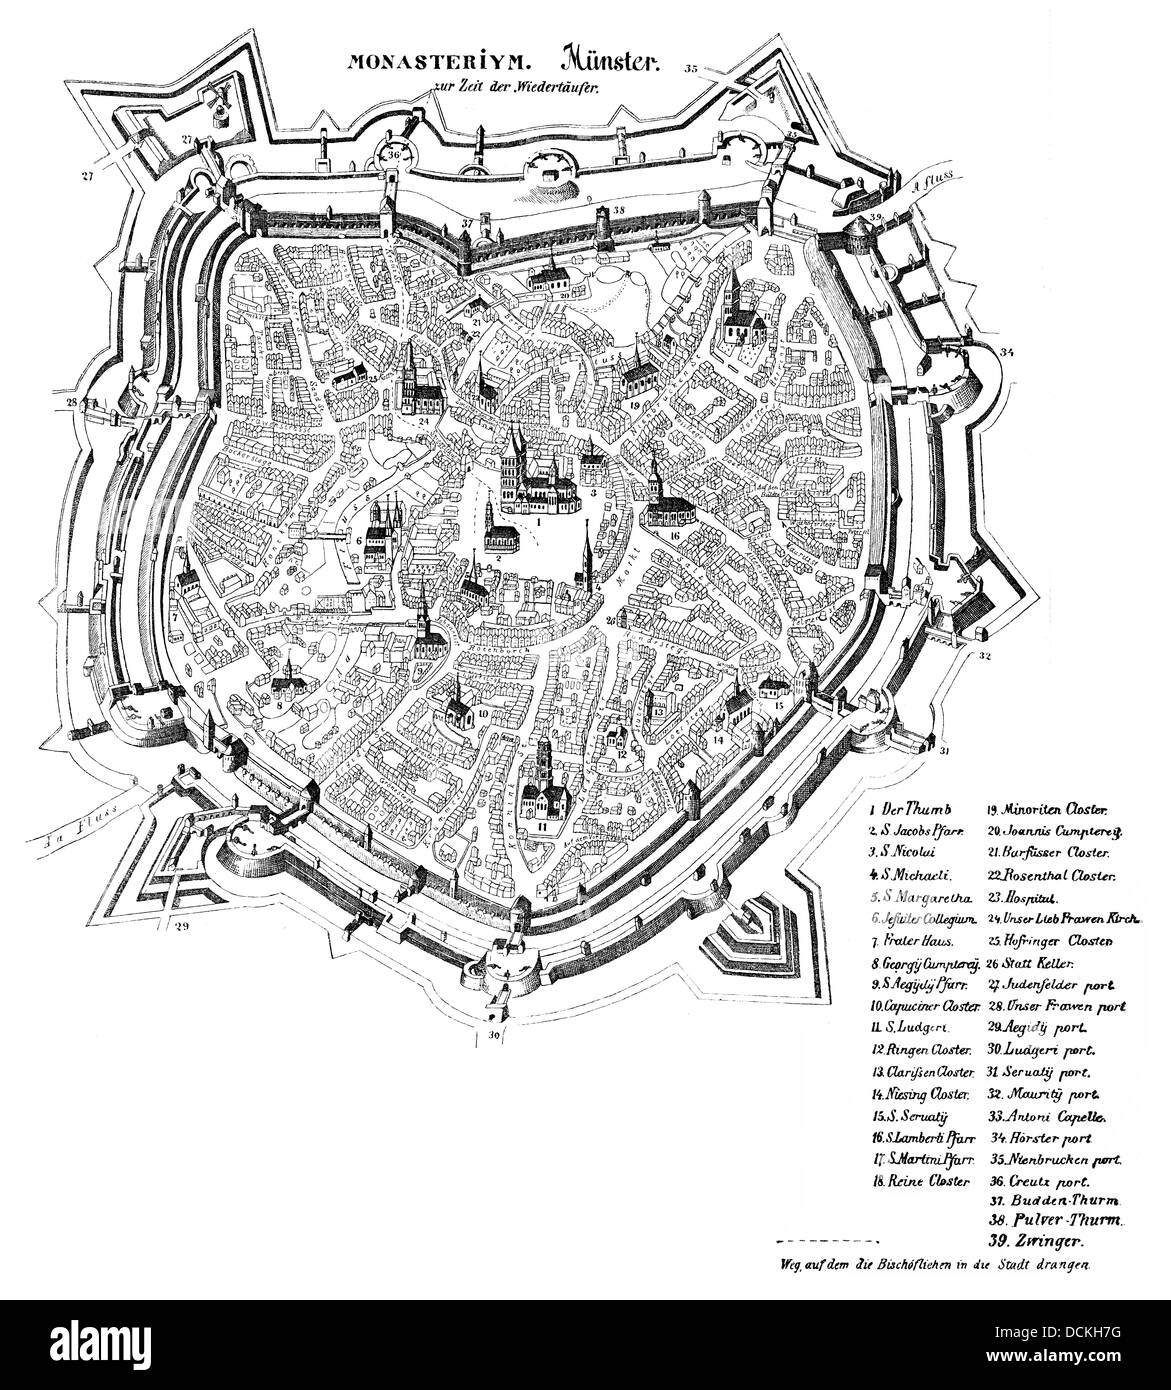 map of Muenster in the 16th Century at the time of the Anabaptists, Muenster, Germany, Europe - Stock Image